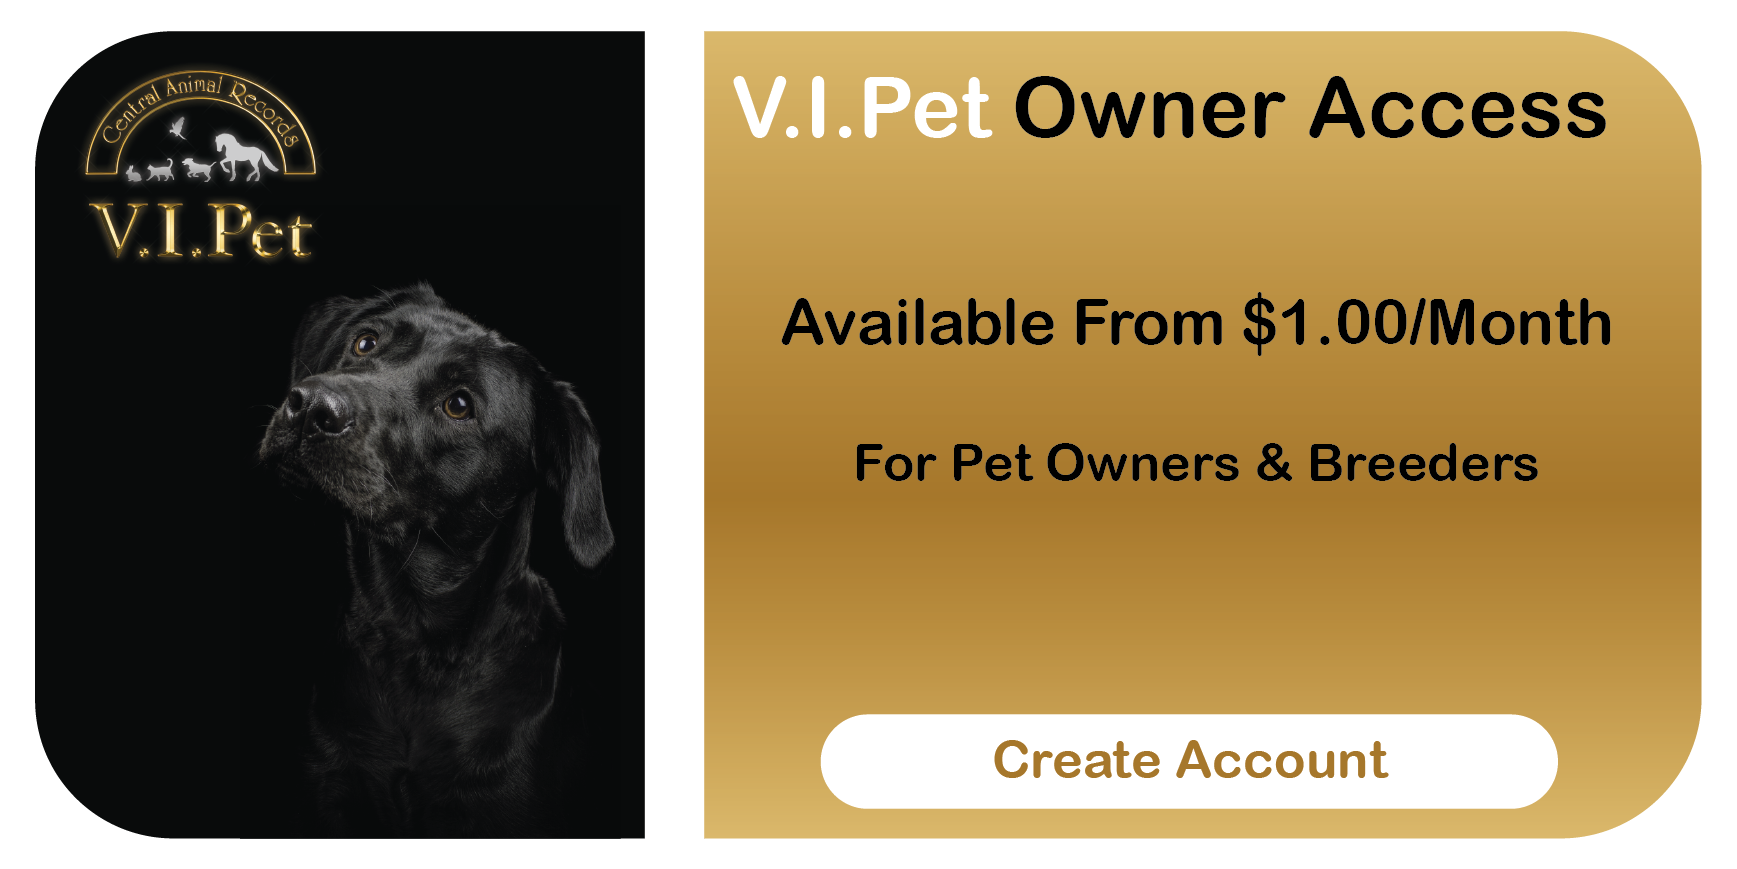 Central Animal Records Online Access Button - VIPet Pet Owners (Black Dog With Gold))